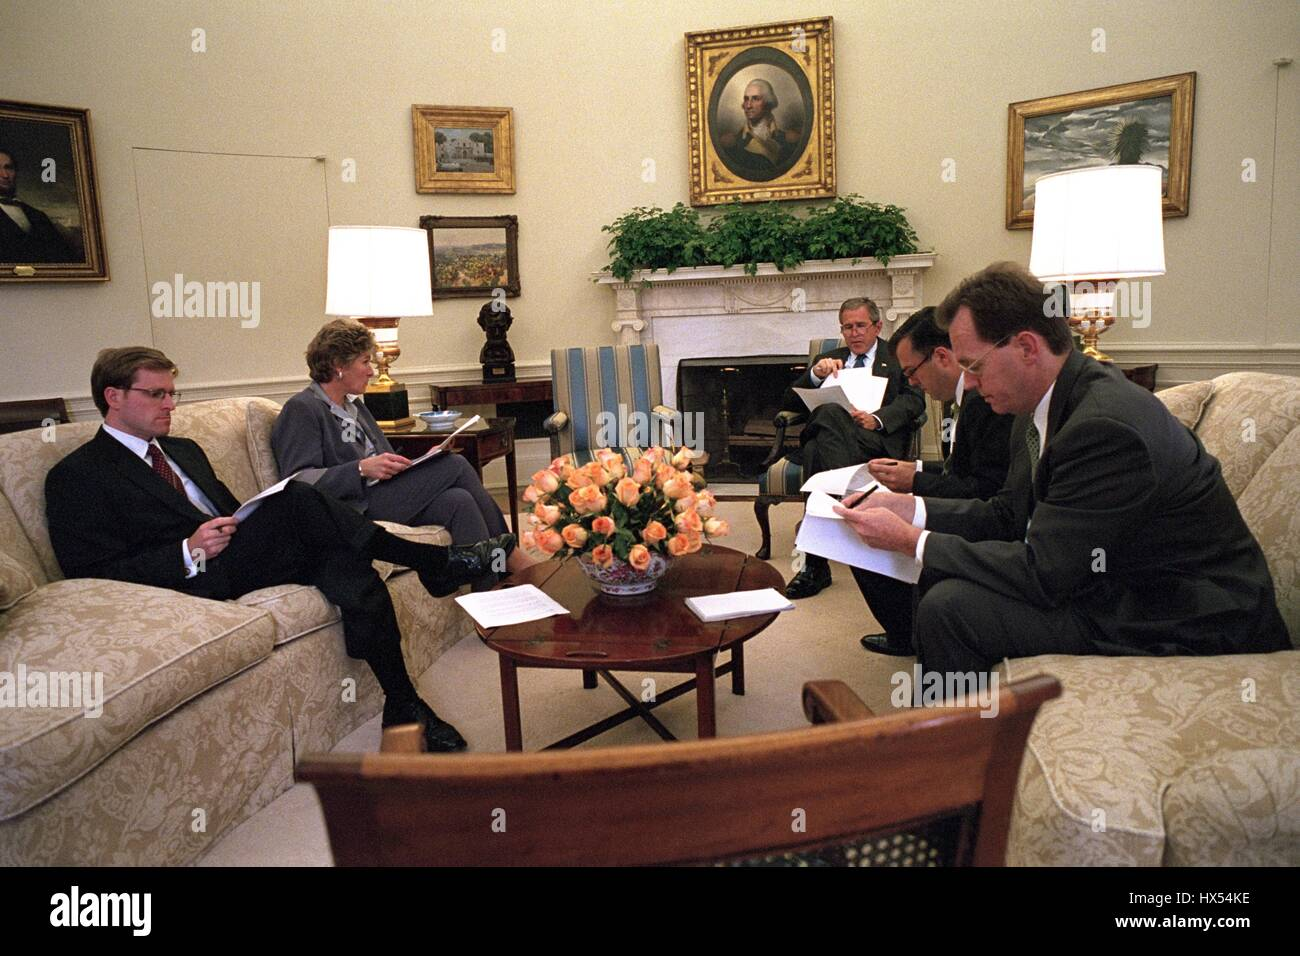 george bush oval office. In The Oval Office Of White House, President George W Bush Sits With Presidential Counselor Karen Hughes And Speechwriters John McConnell, Mike Gerson,